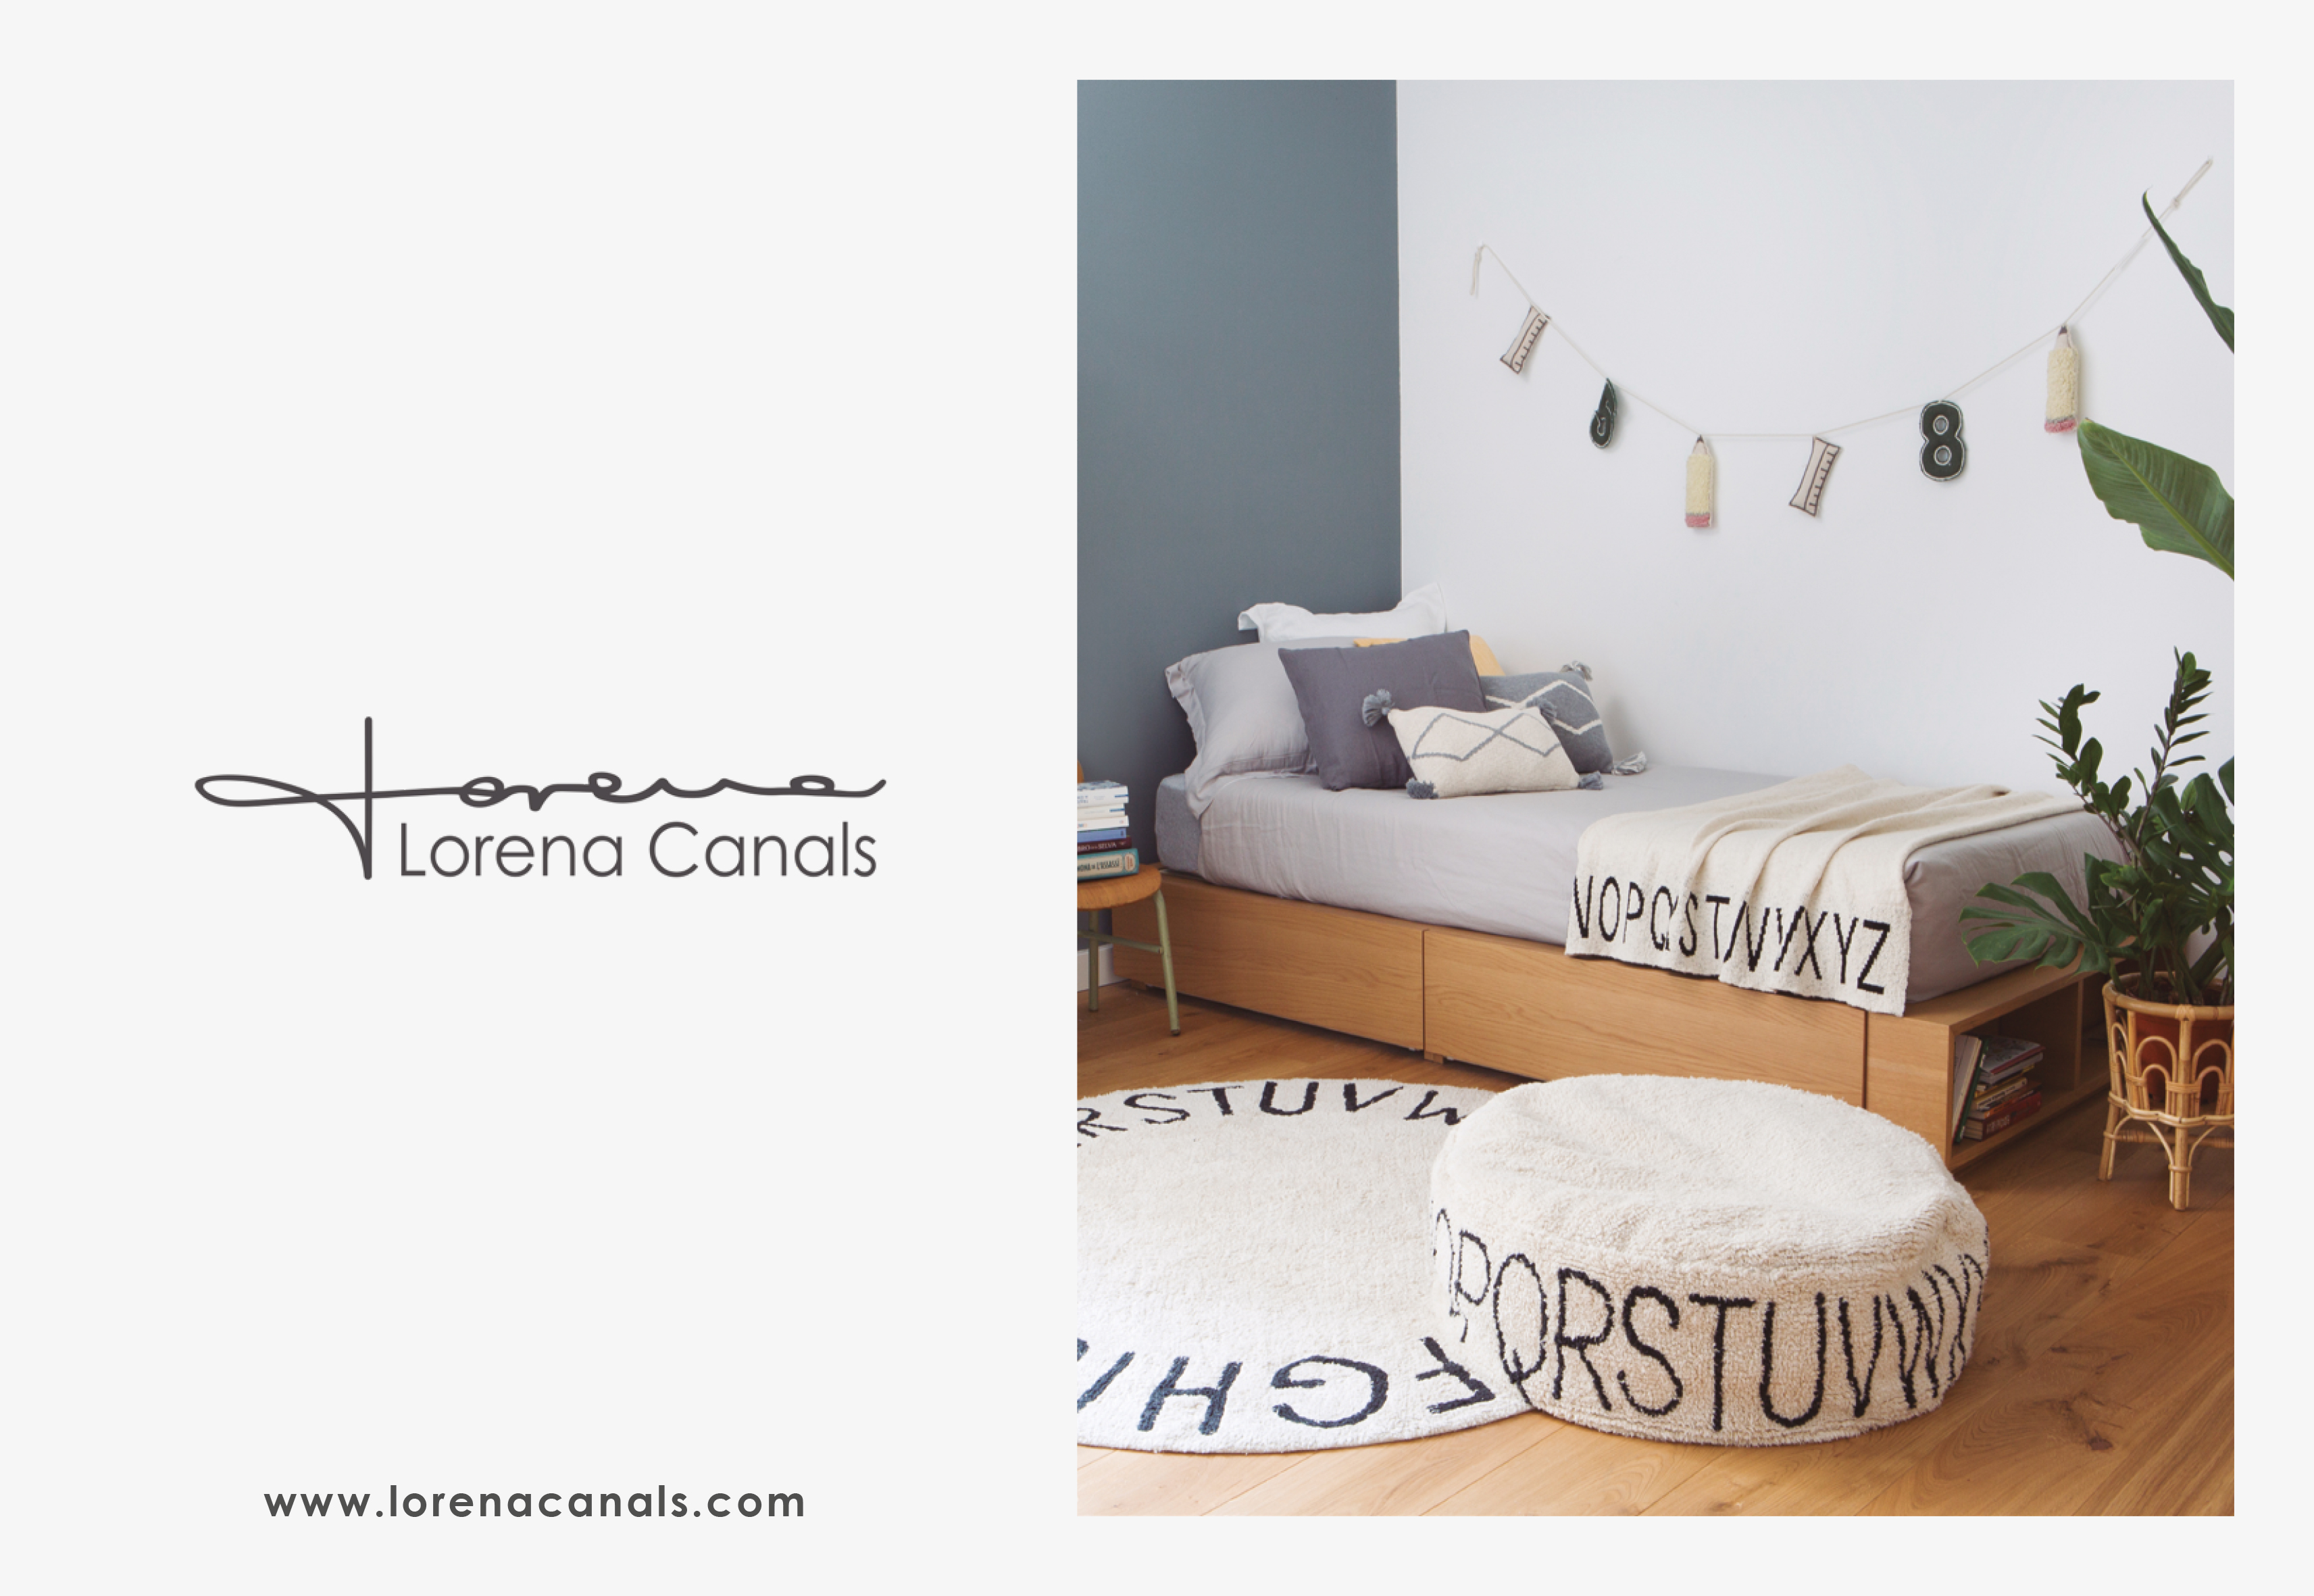 Lorena Canals Cotton